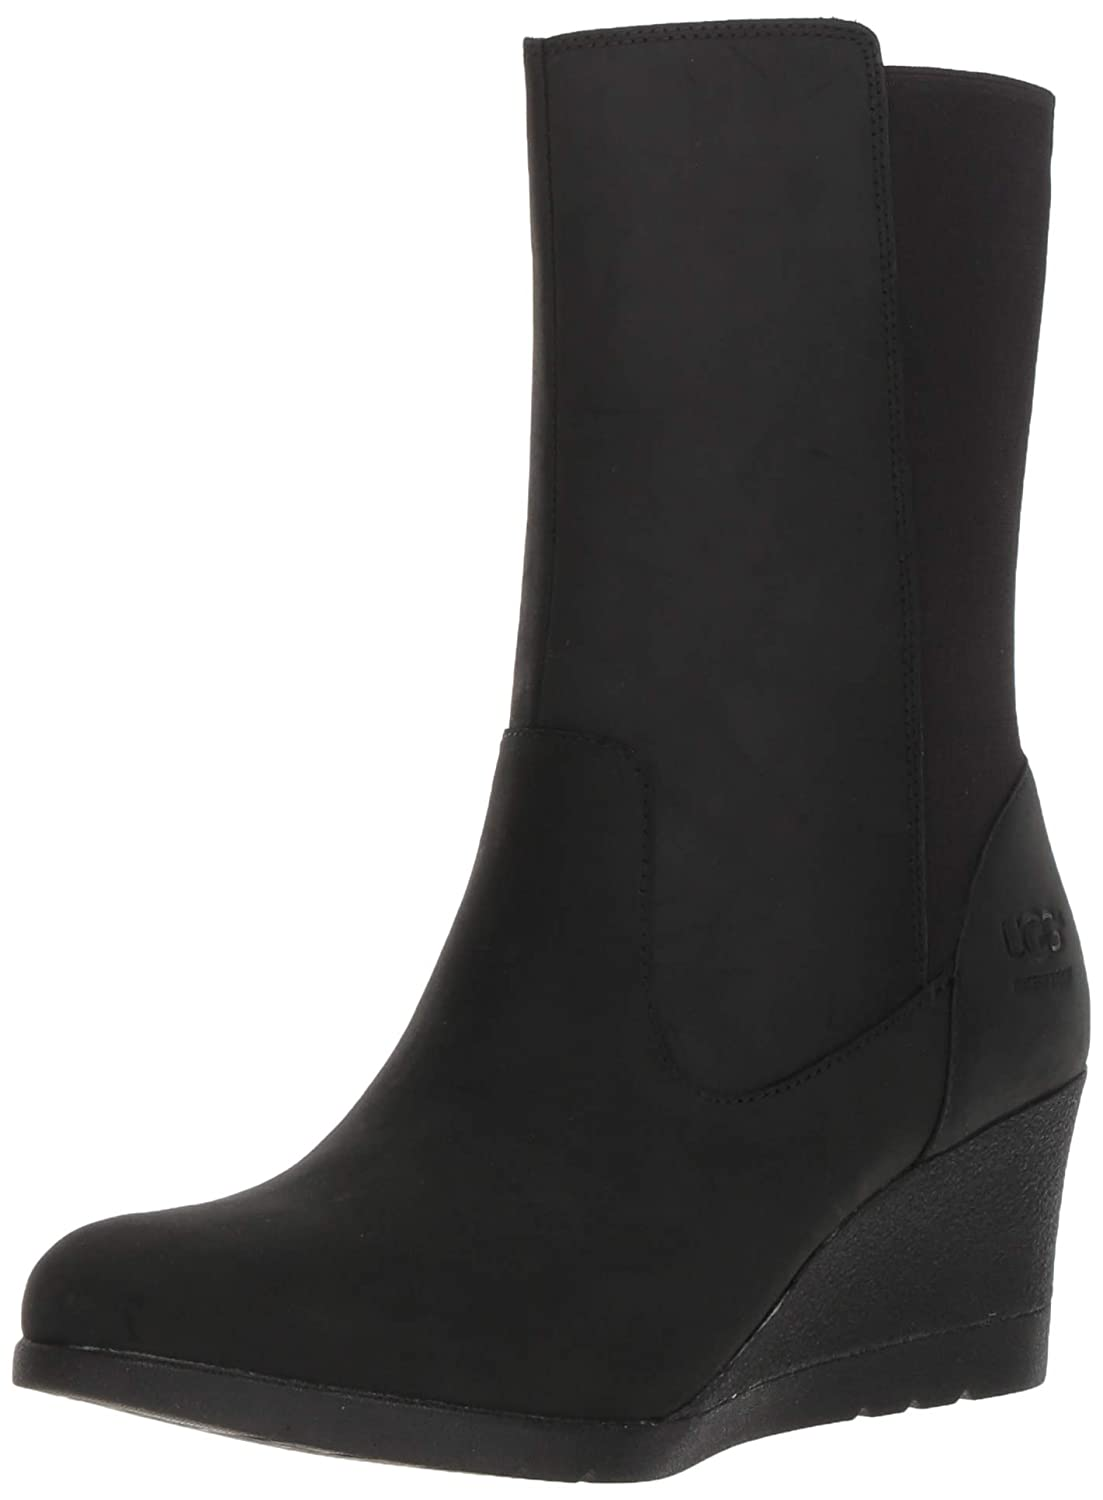 e06b5758172 UGG Women's W Coraline Fashion Boot